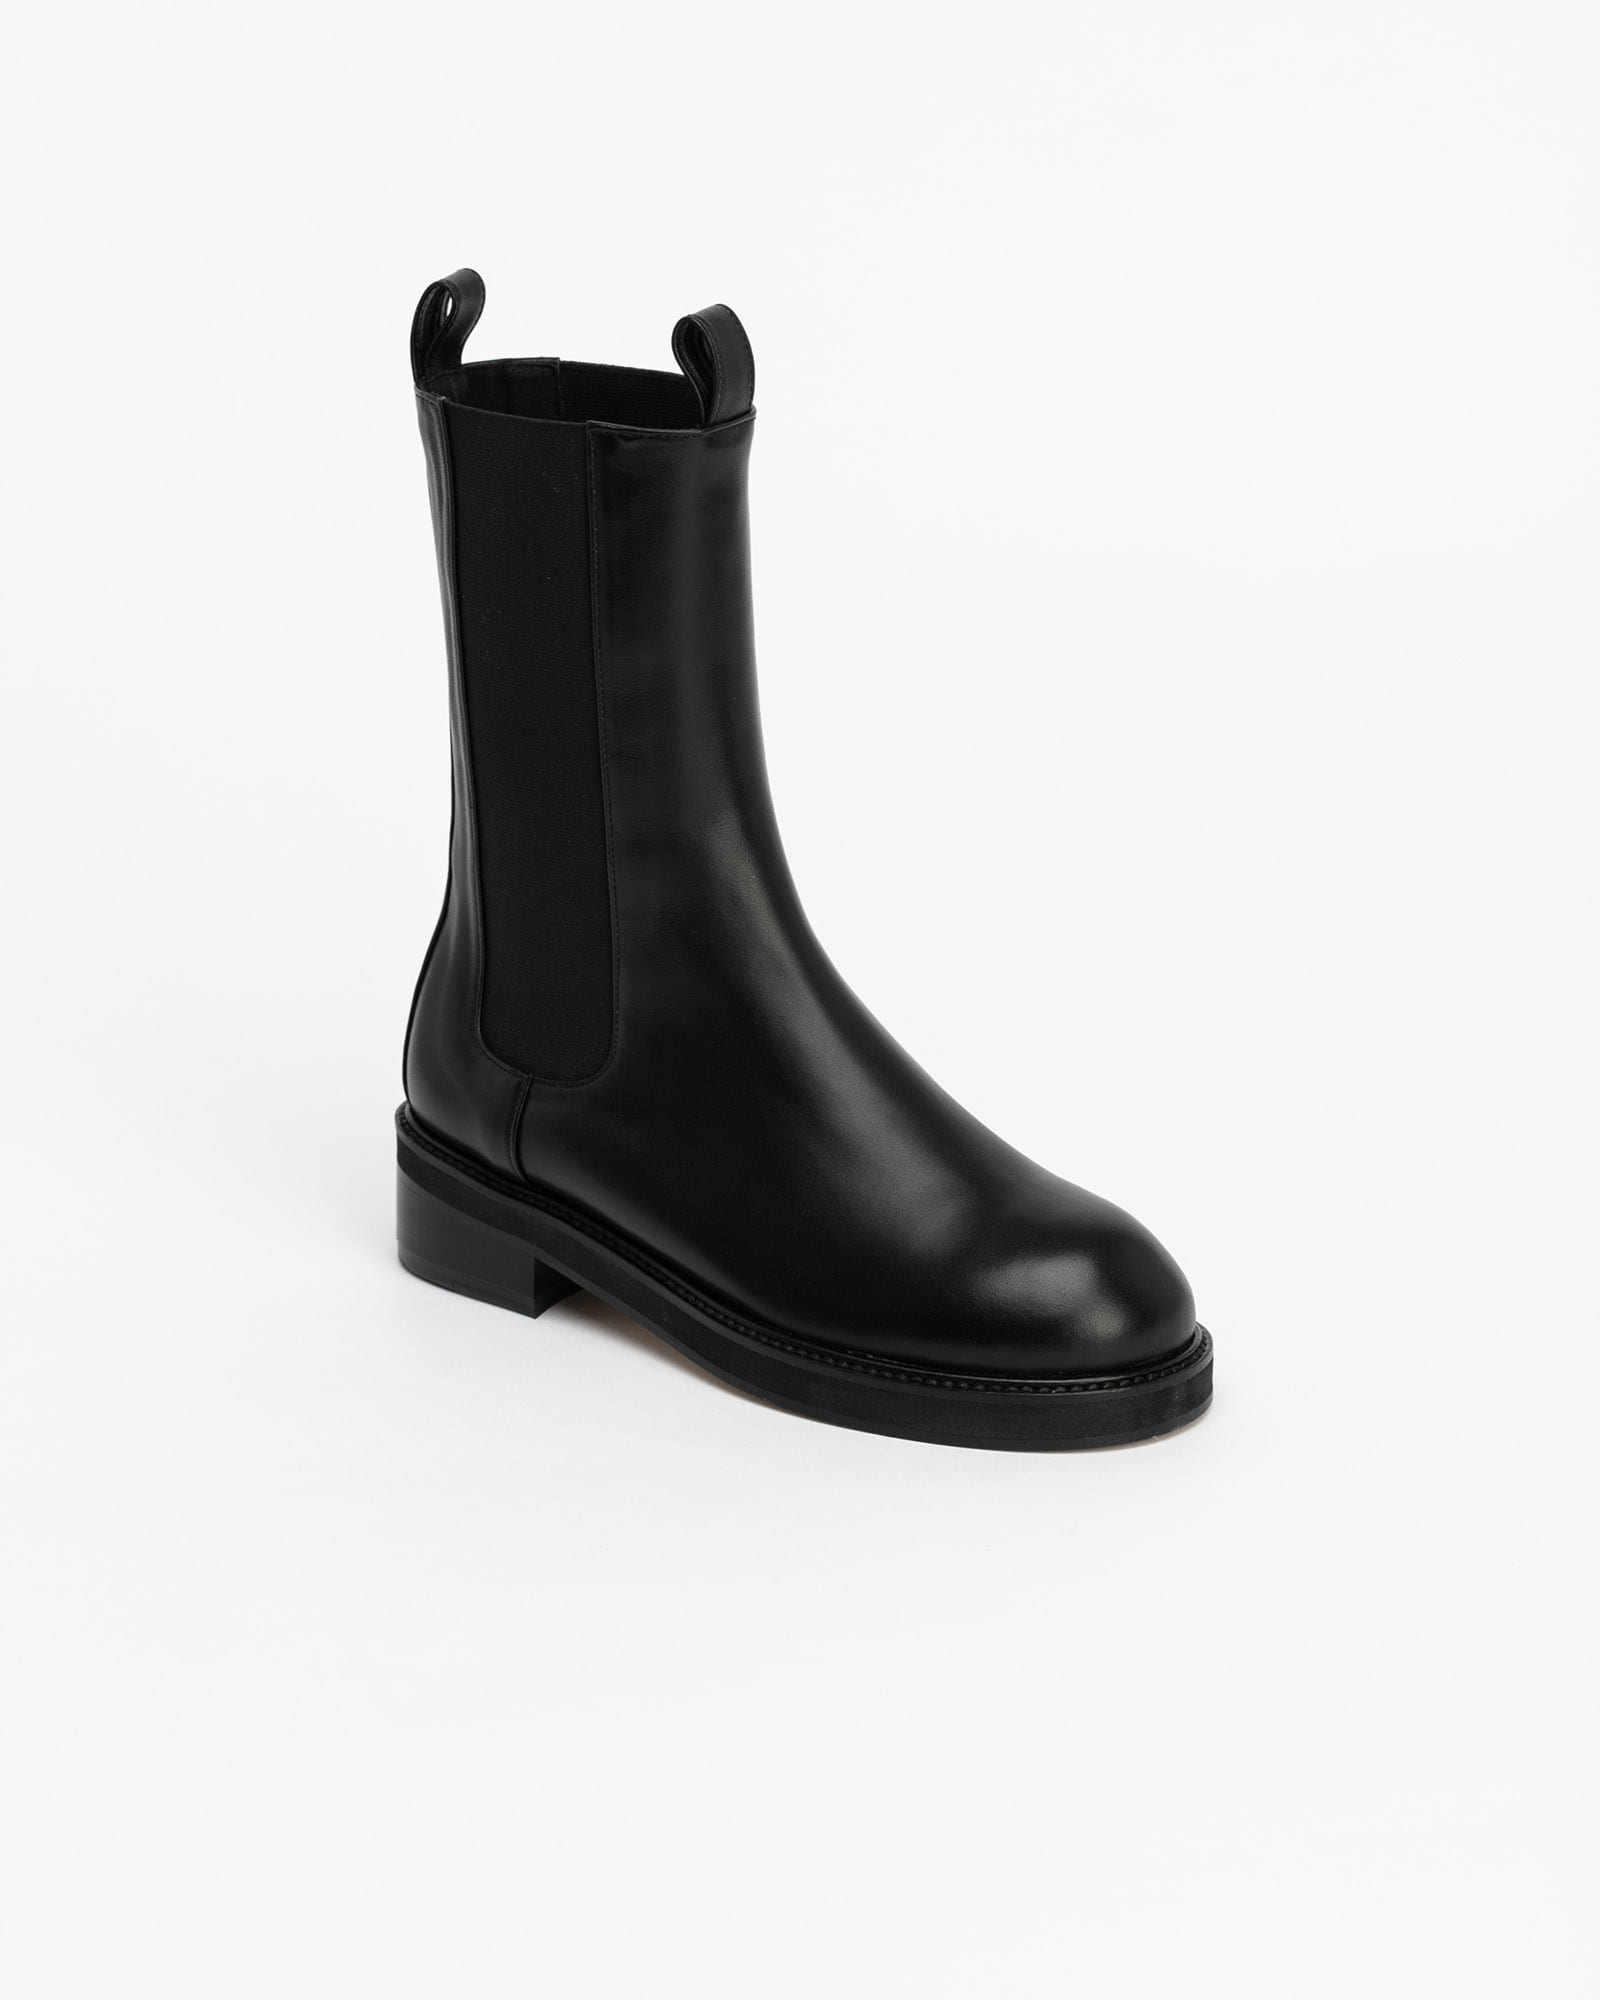 Signific High-rise Chelsea Boots in Black